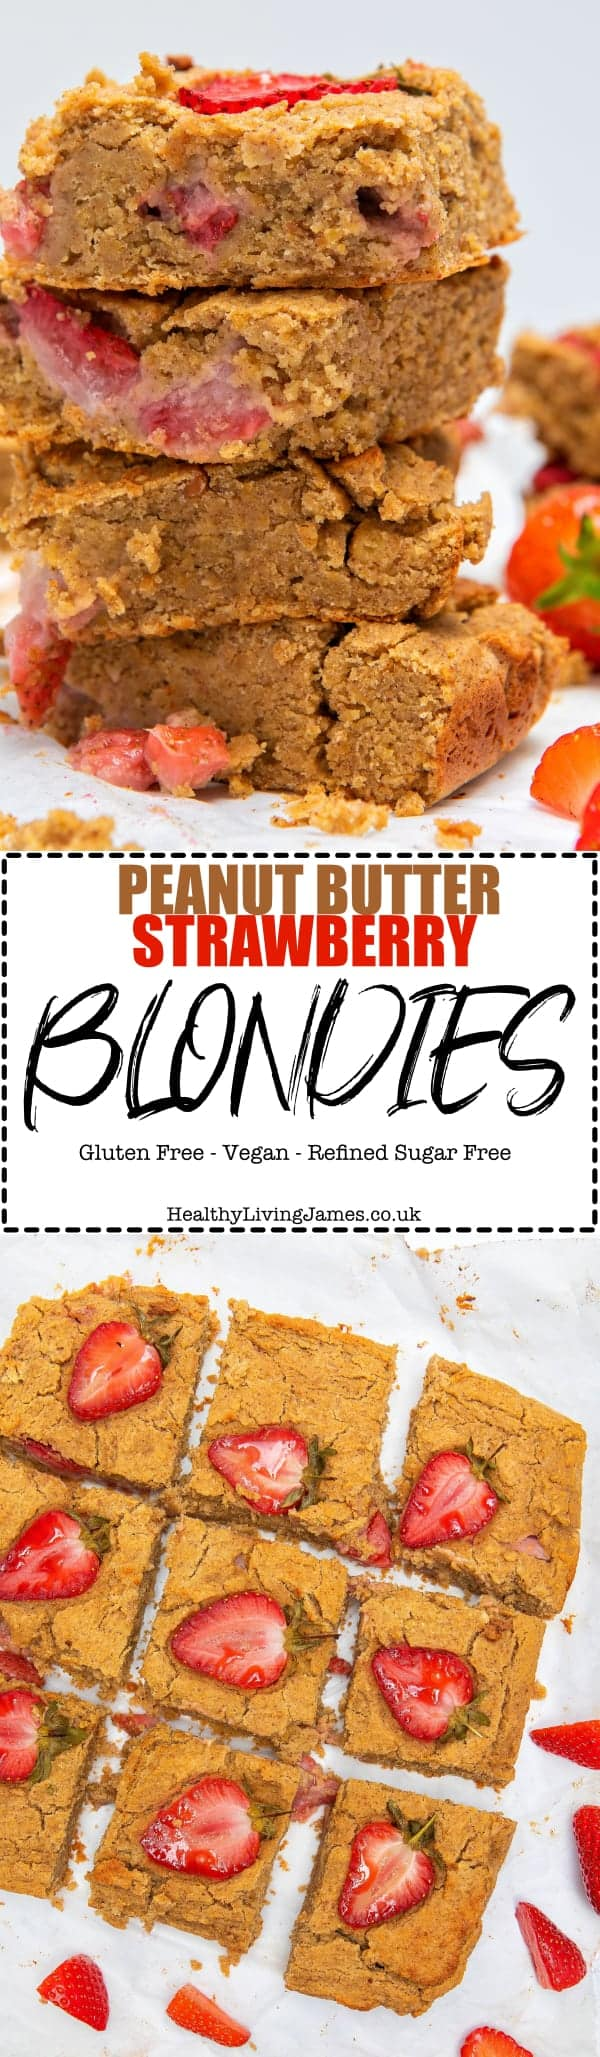 Peanut Butter Strawberry Blondies - Pinterest